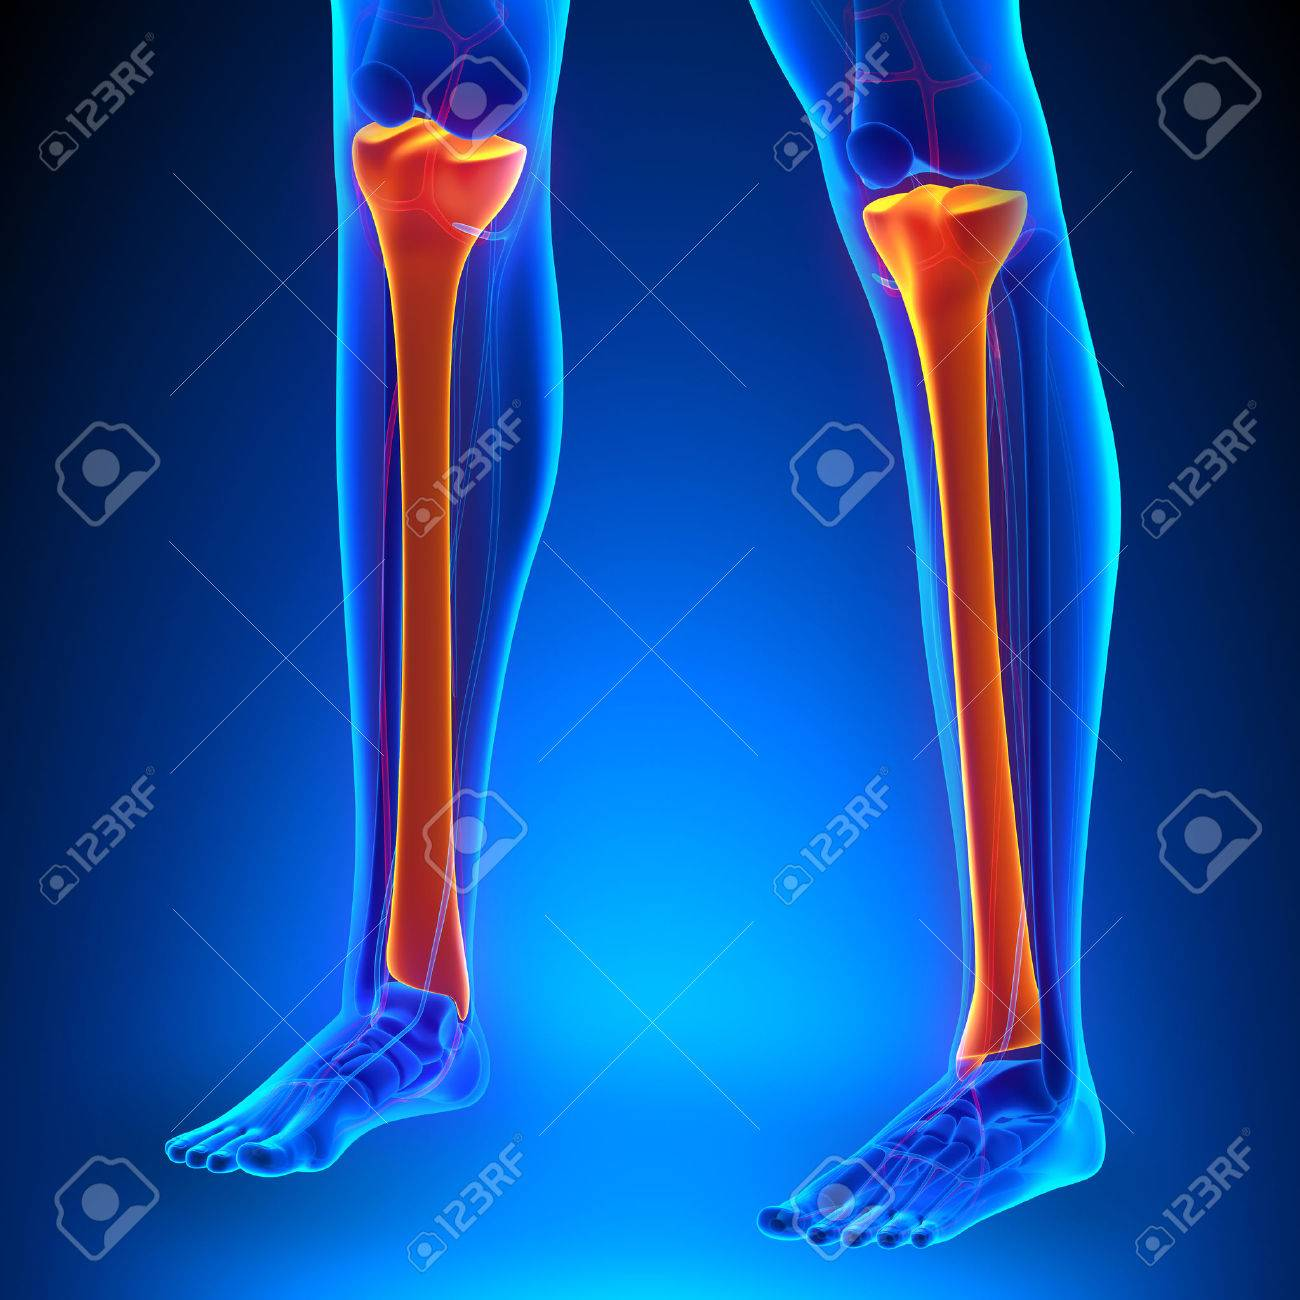 Tibia Anatomy Bones With Ciculatory System Stock Photo, Picture And ...